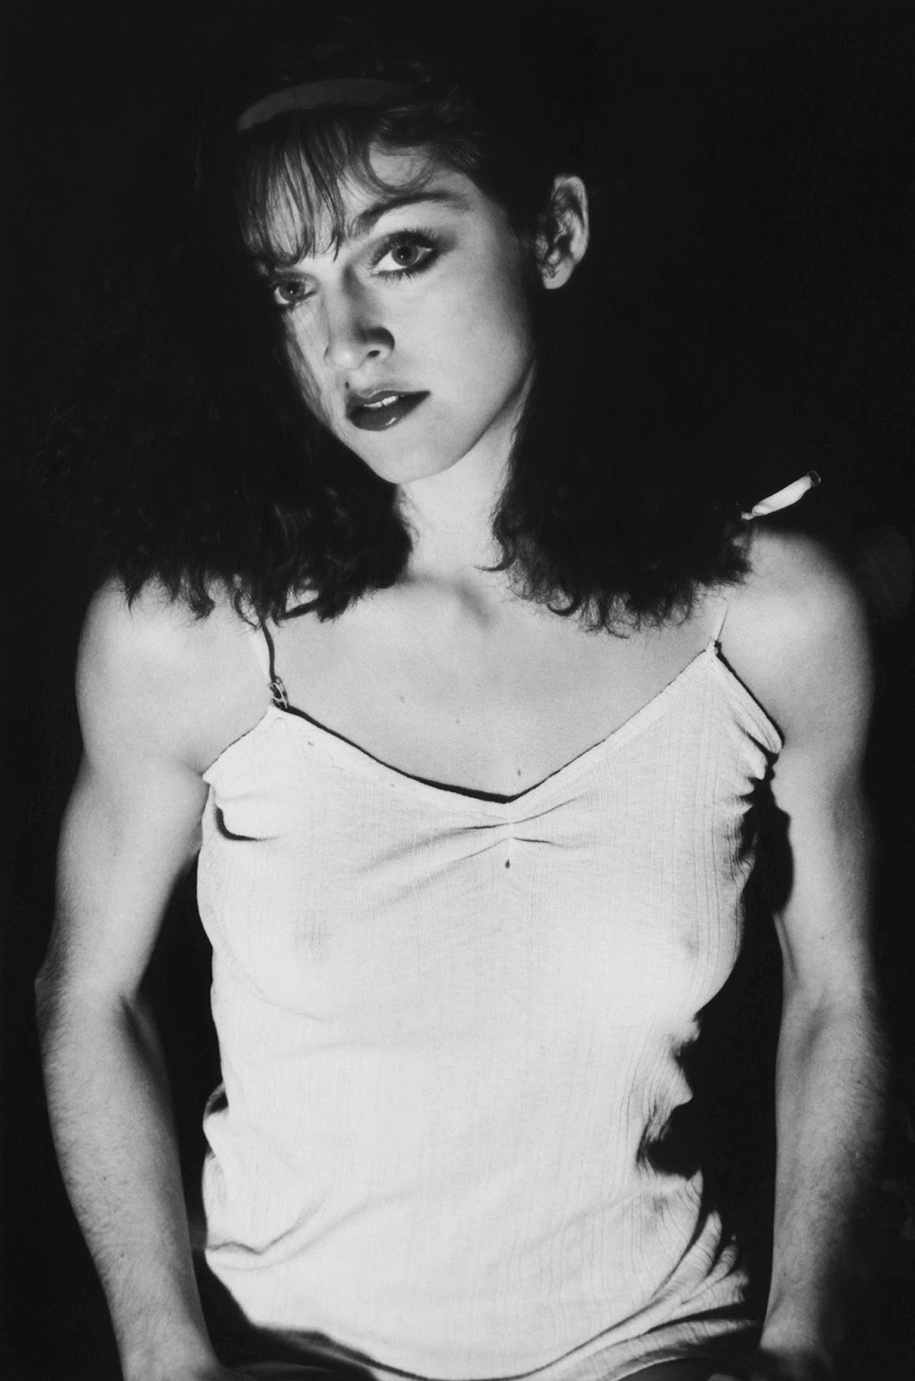 madonna-photoshoot-before-she-was-famous-new-york-1